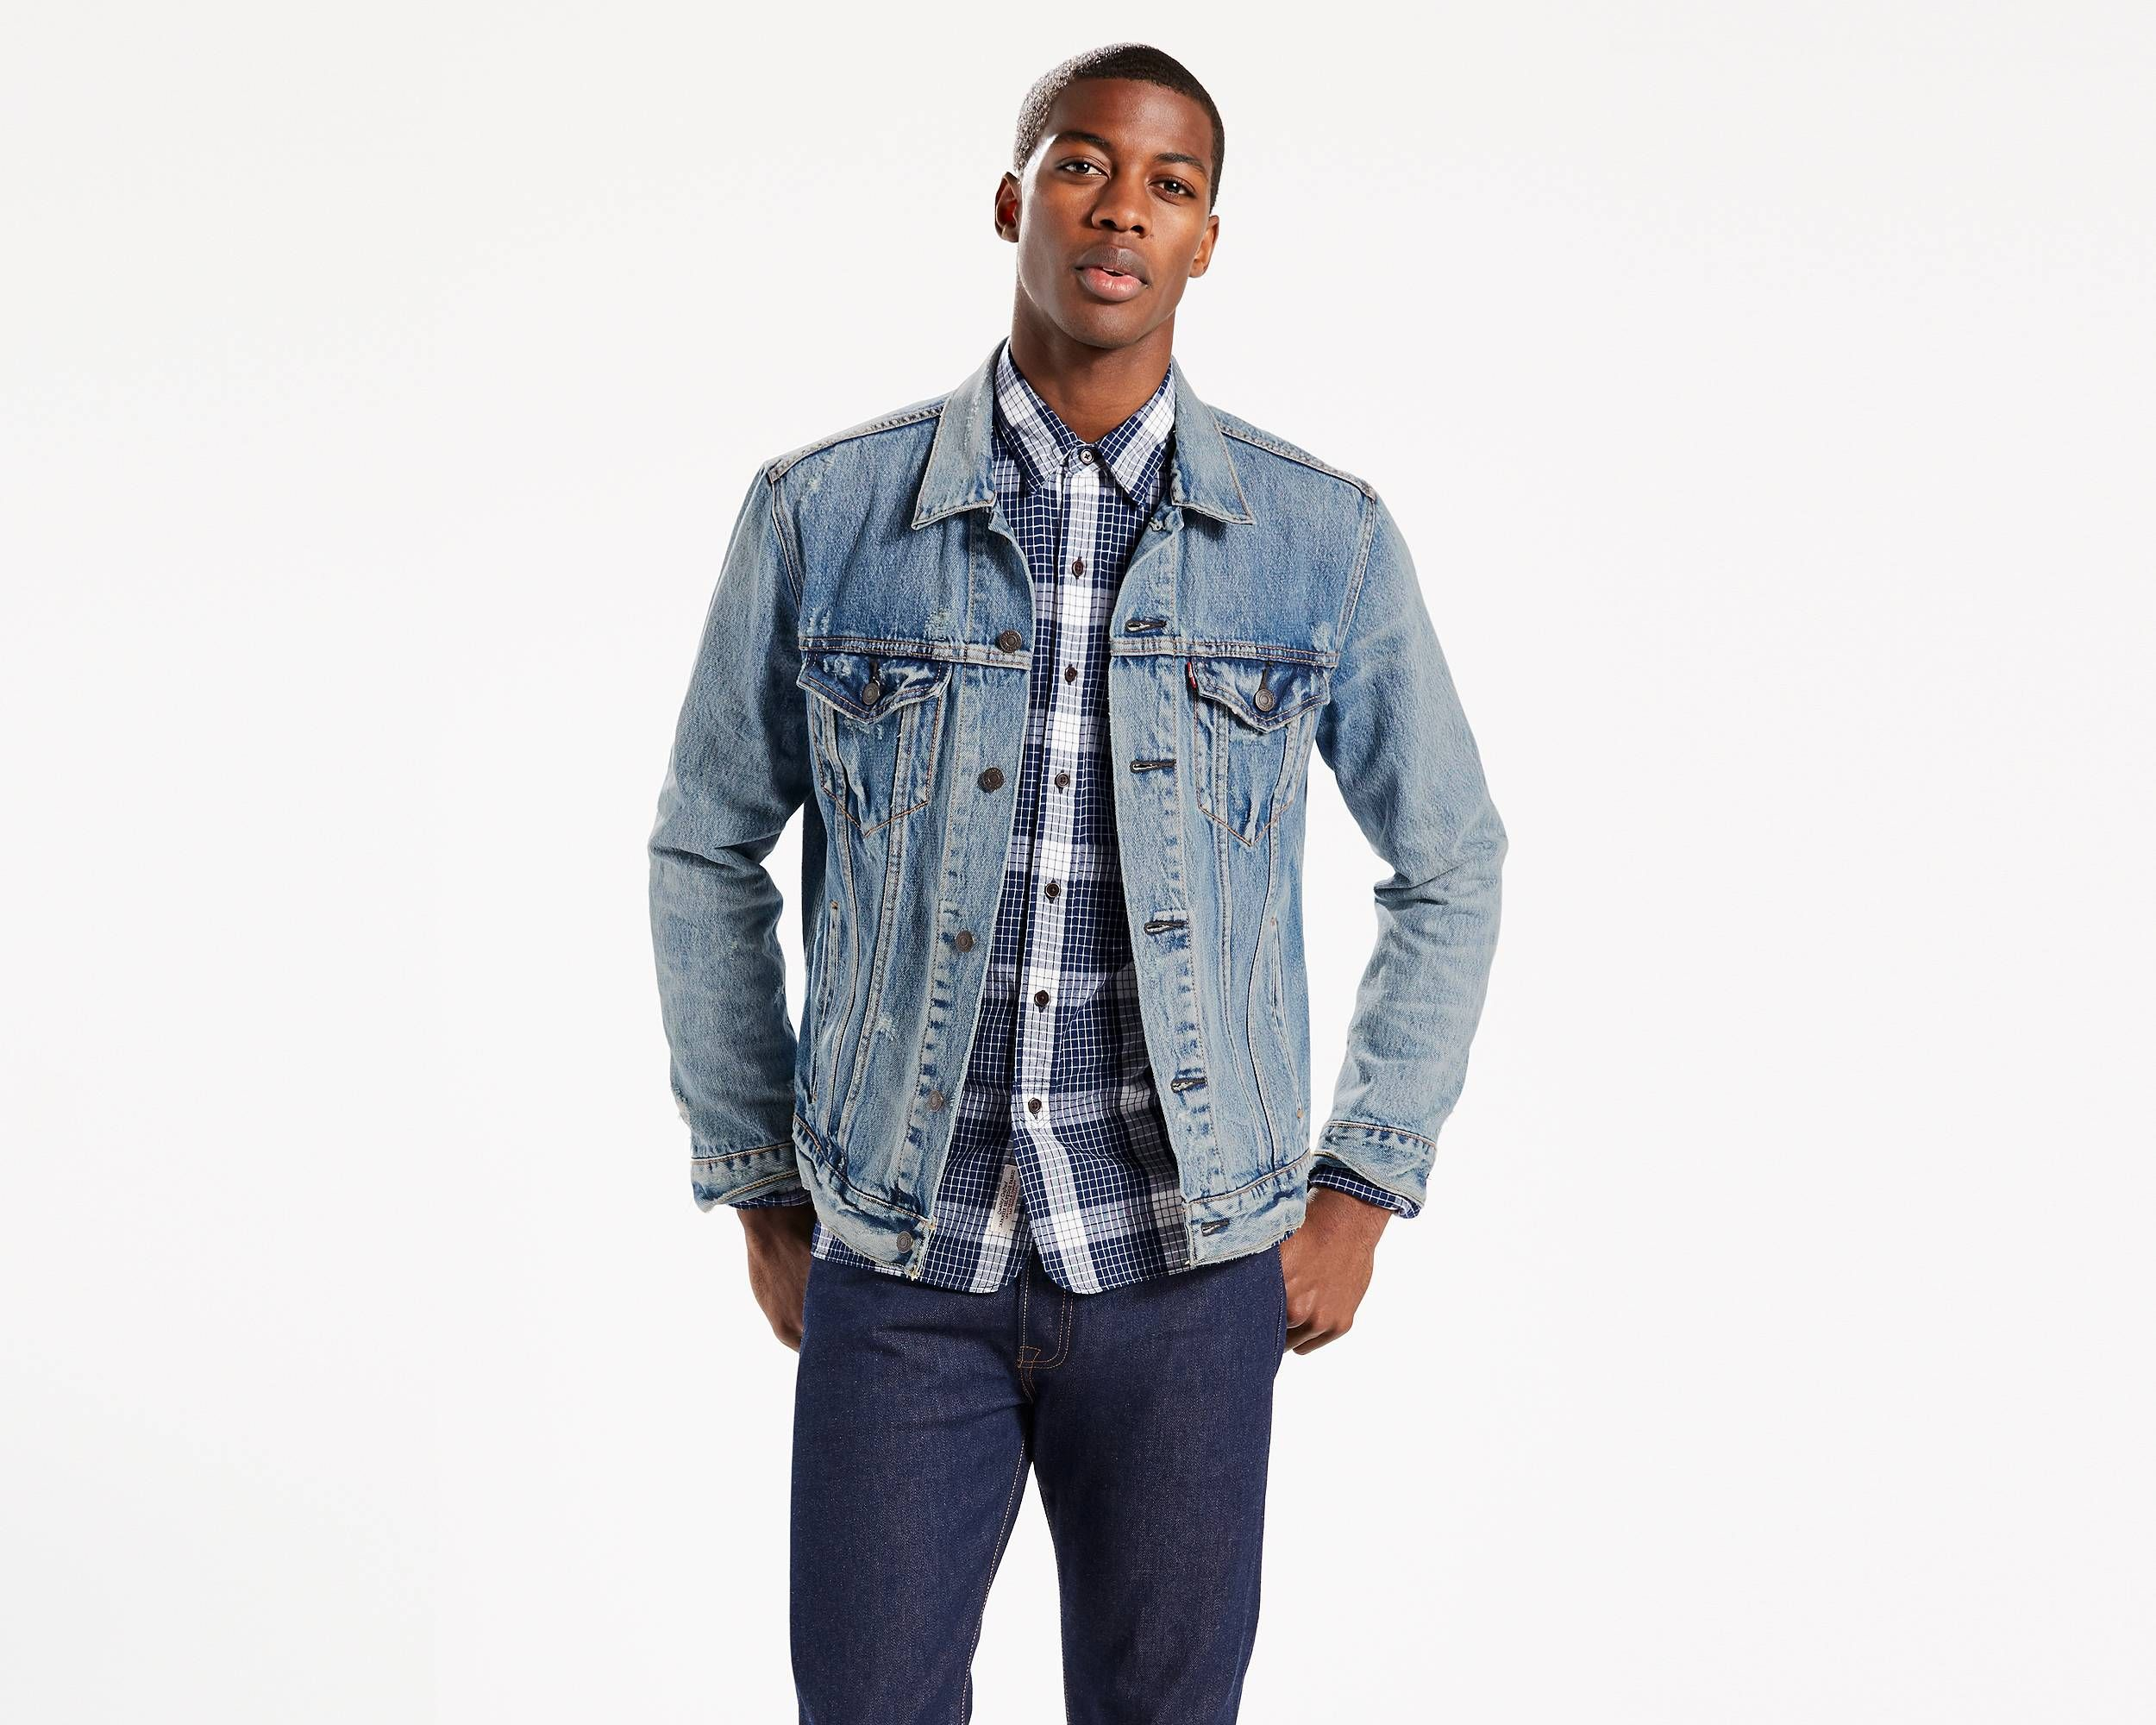 Fit For Anything And Made To Go The Distance Our Truckers Have Been Everyone 39 S Favorite Since 1962 Light Wash Denim Jacket Denim Vest Men Jean Jacket Men [ 2000 x 2500 Pixel ]